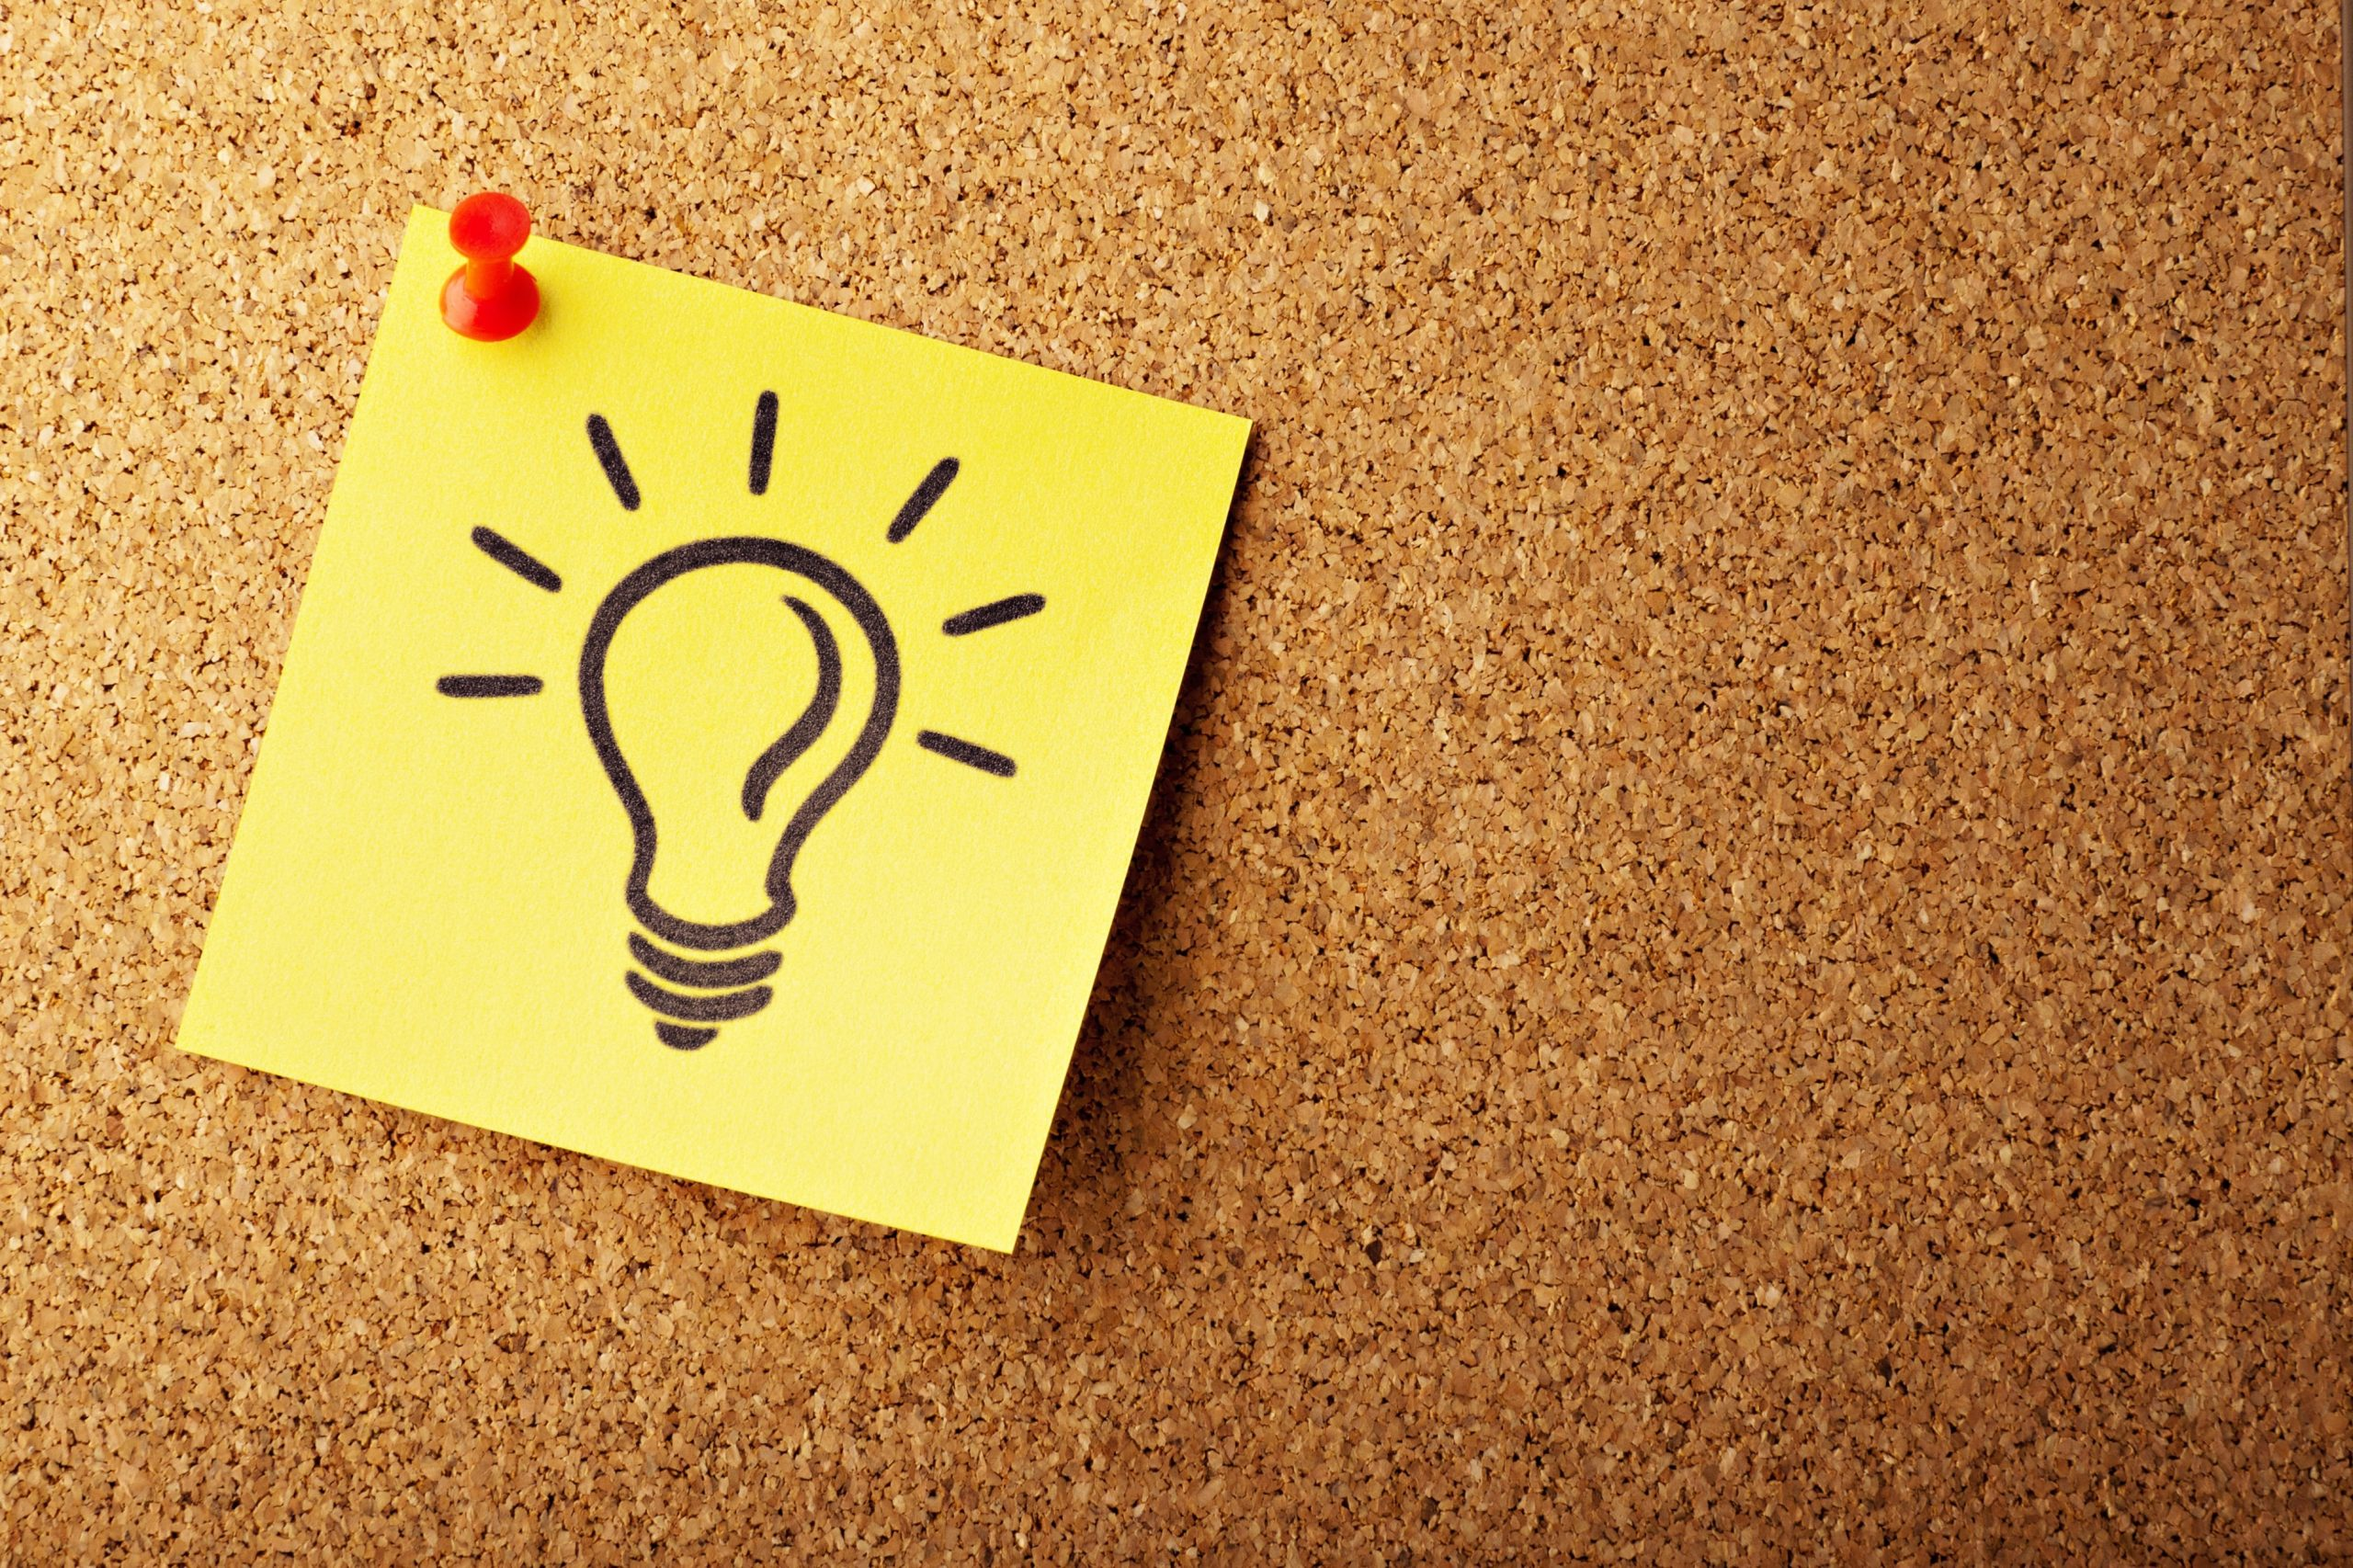 Image of a light bulb on a yellow post-it pinned to a corkboard